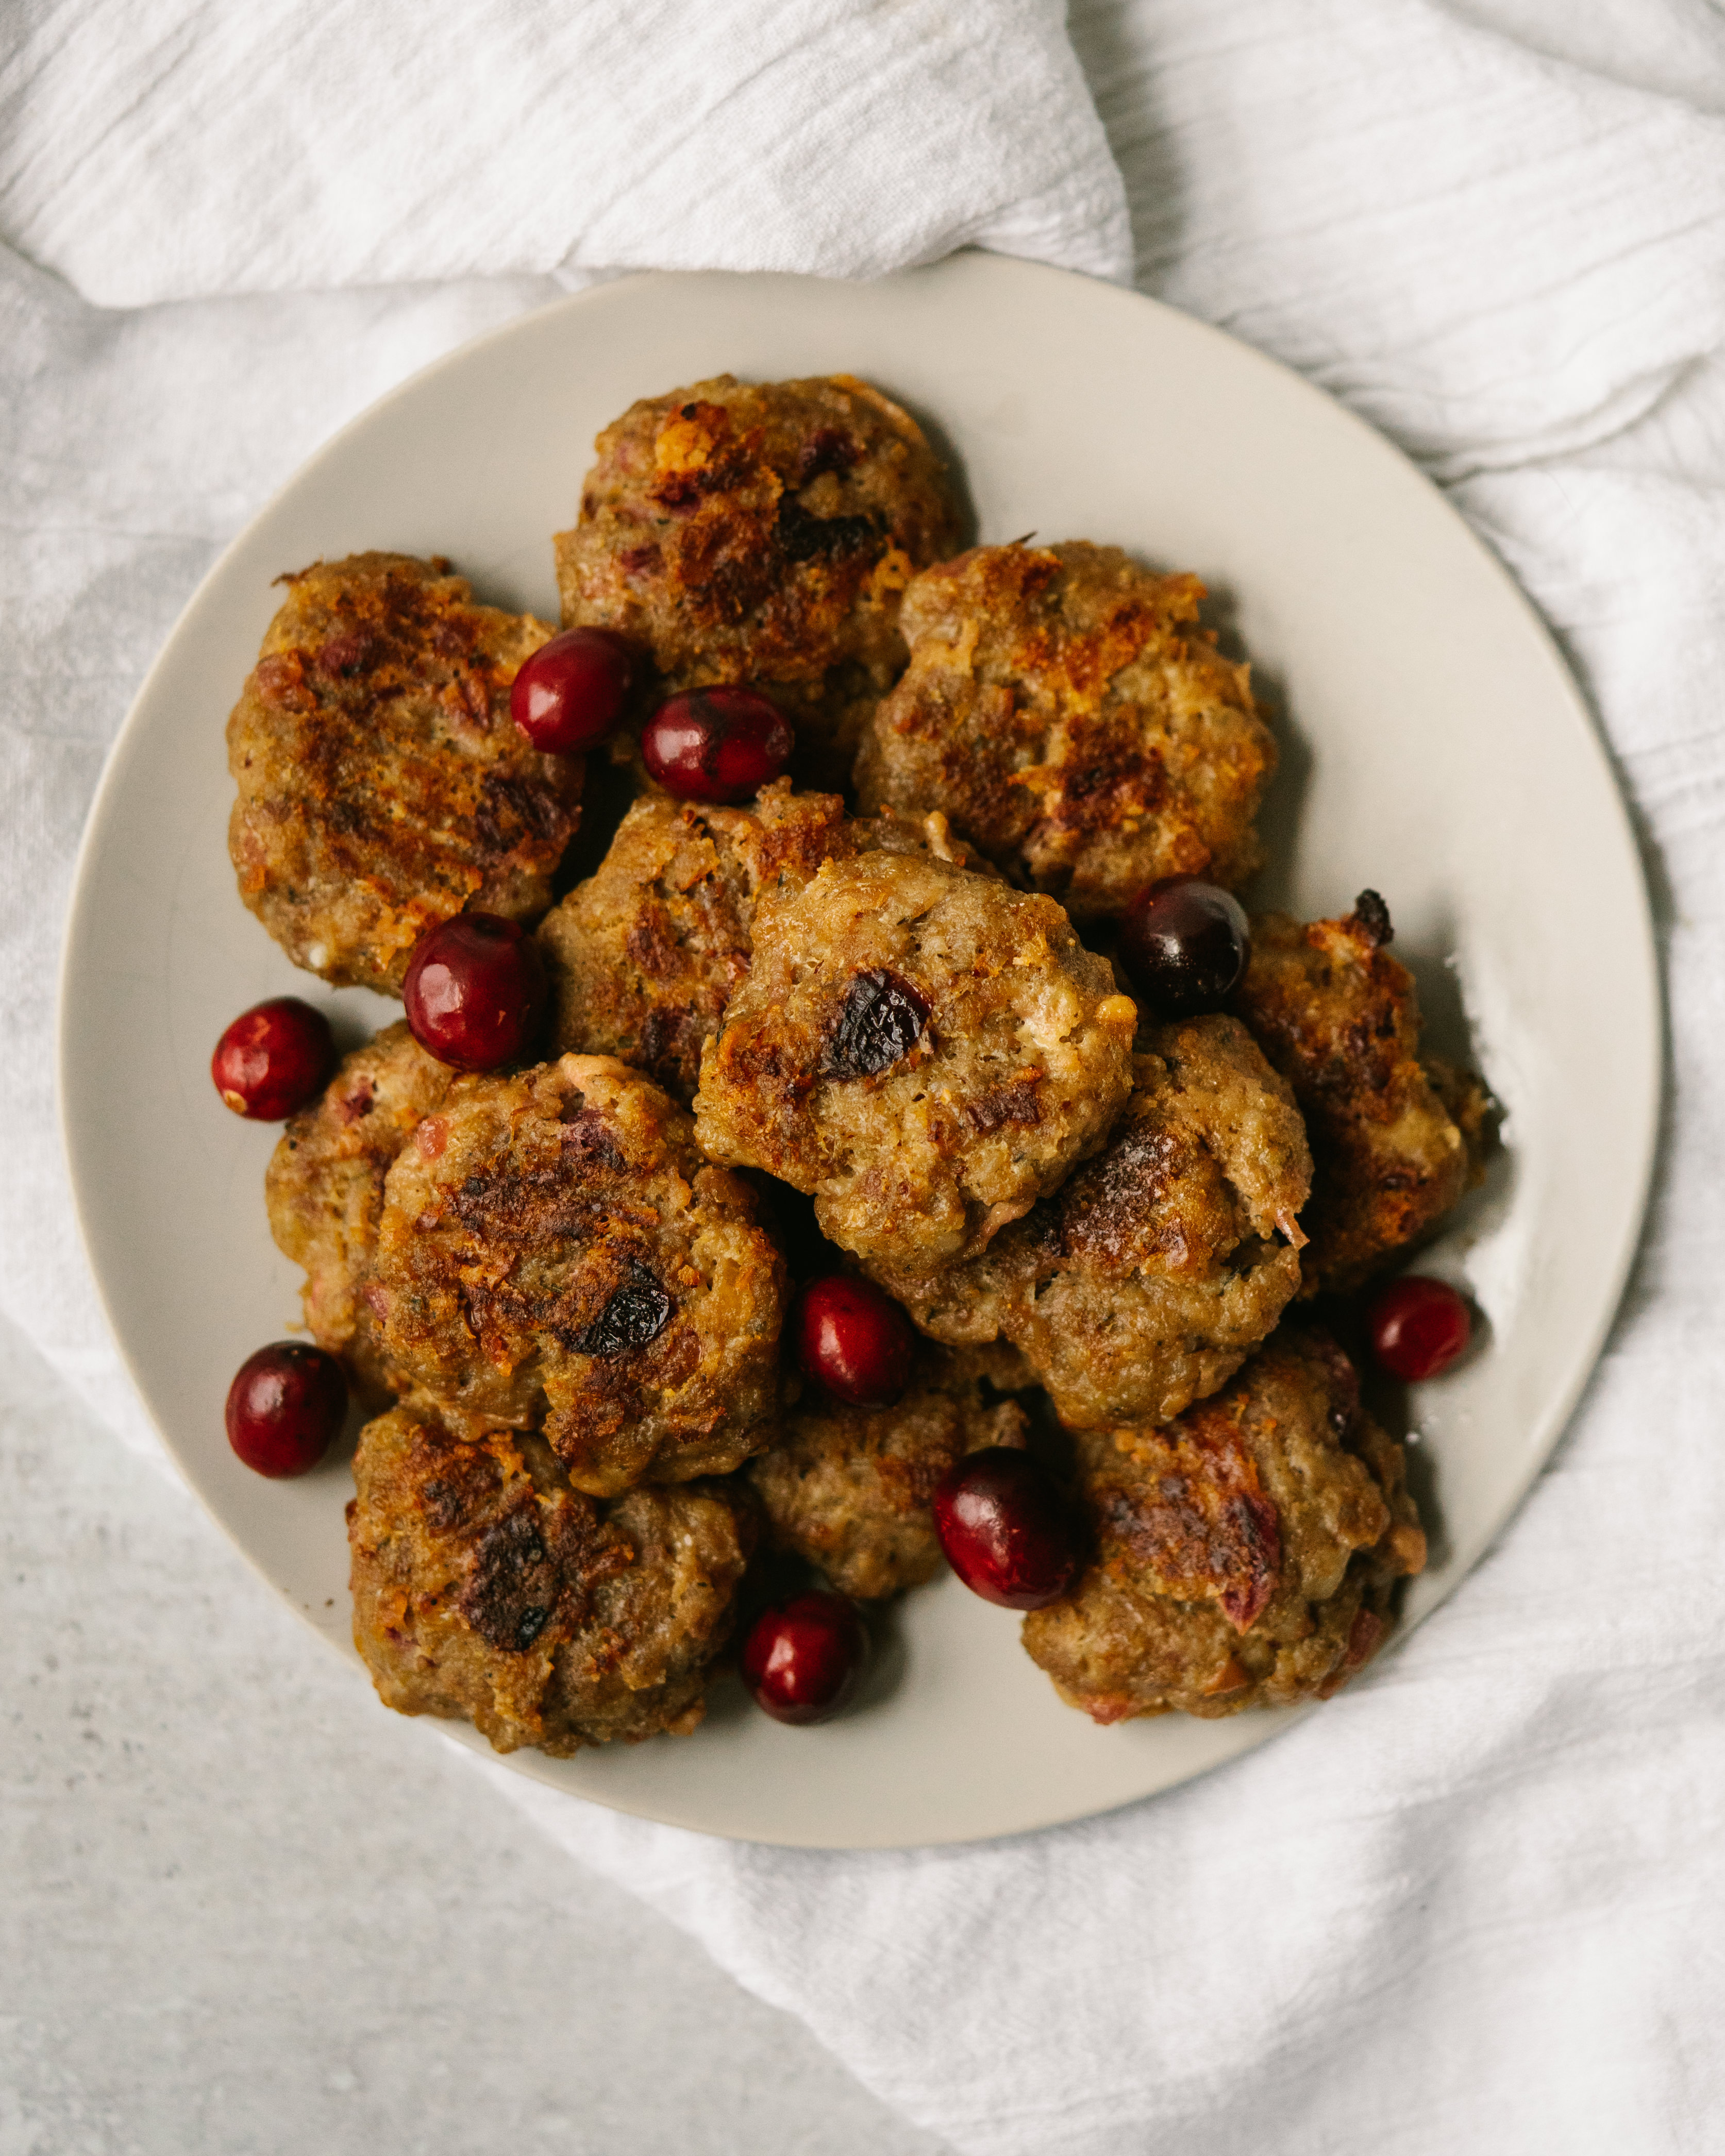 Cranberry Thyme Baked Sausage Patties